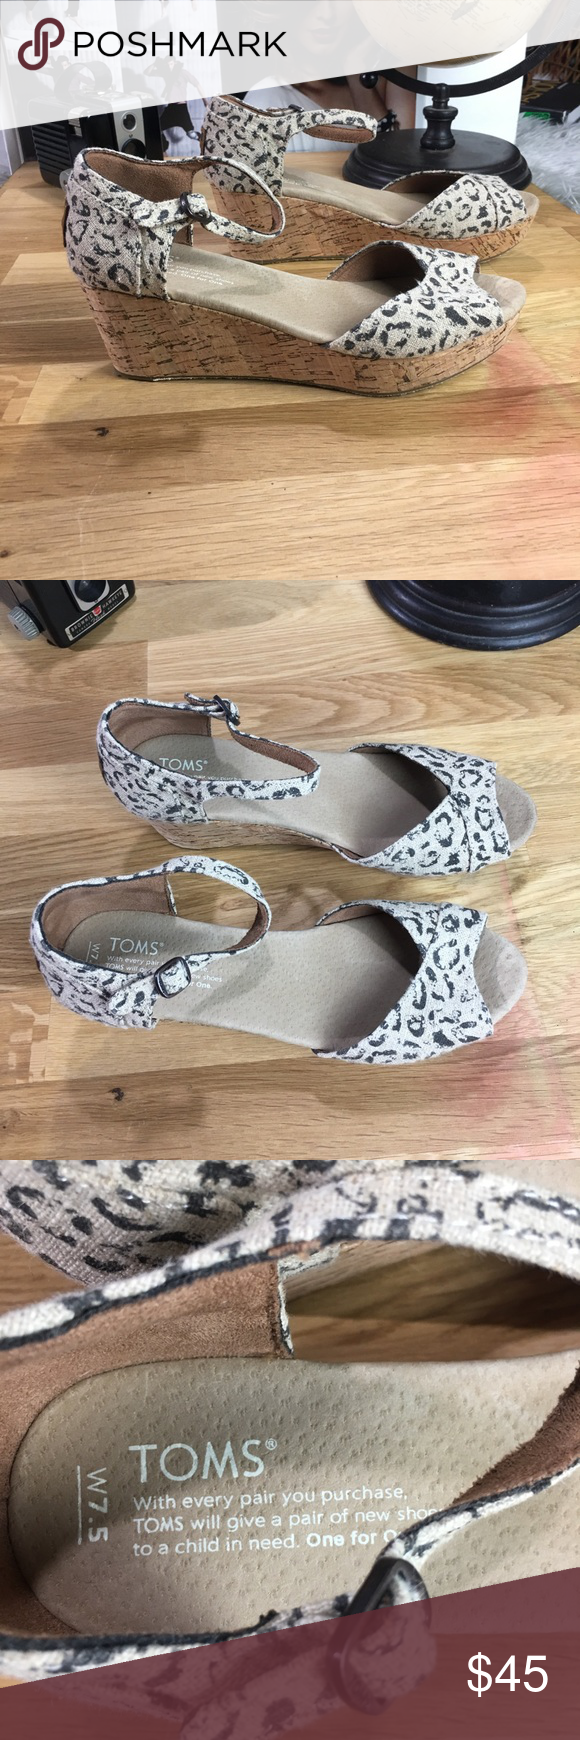 Toms Wedge Sandle with open toe in Animal print Toms Wedge Sandle with open toe in Animal print Toms Shoes #tomwedges